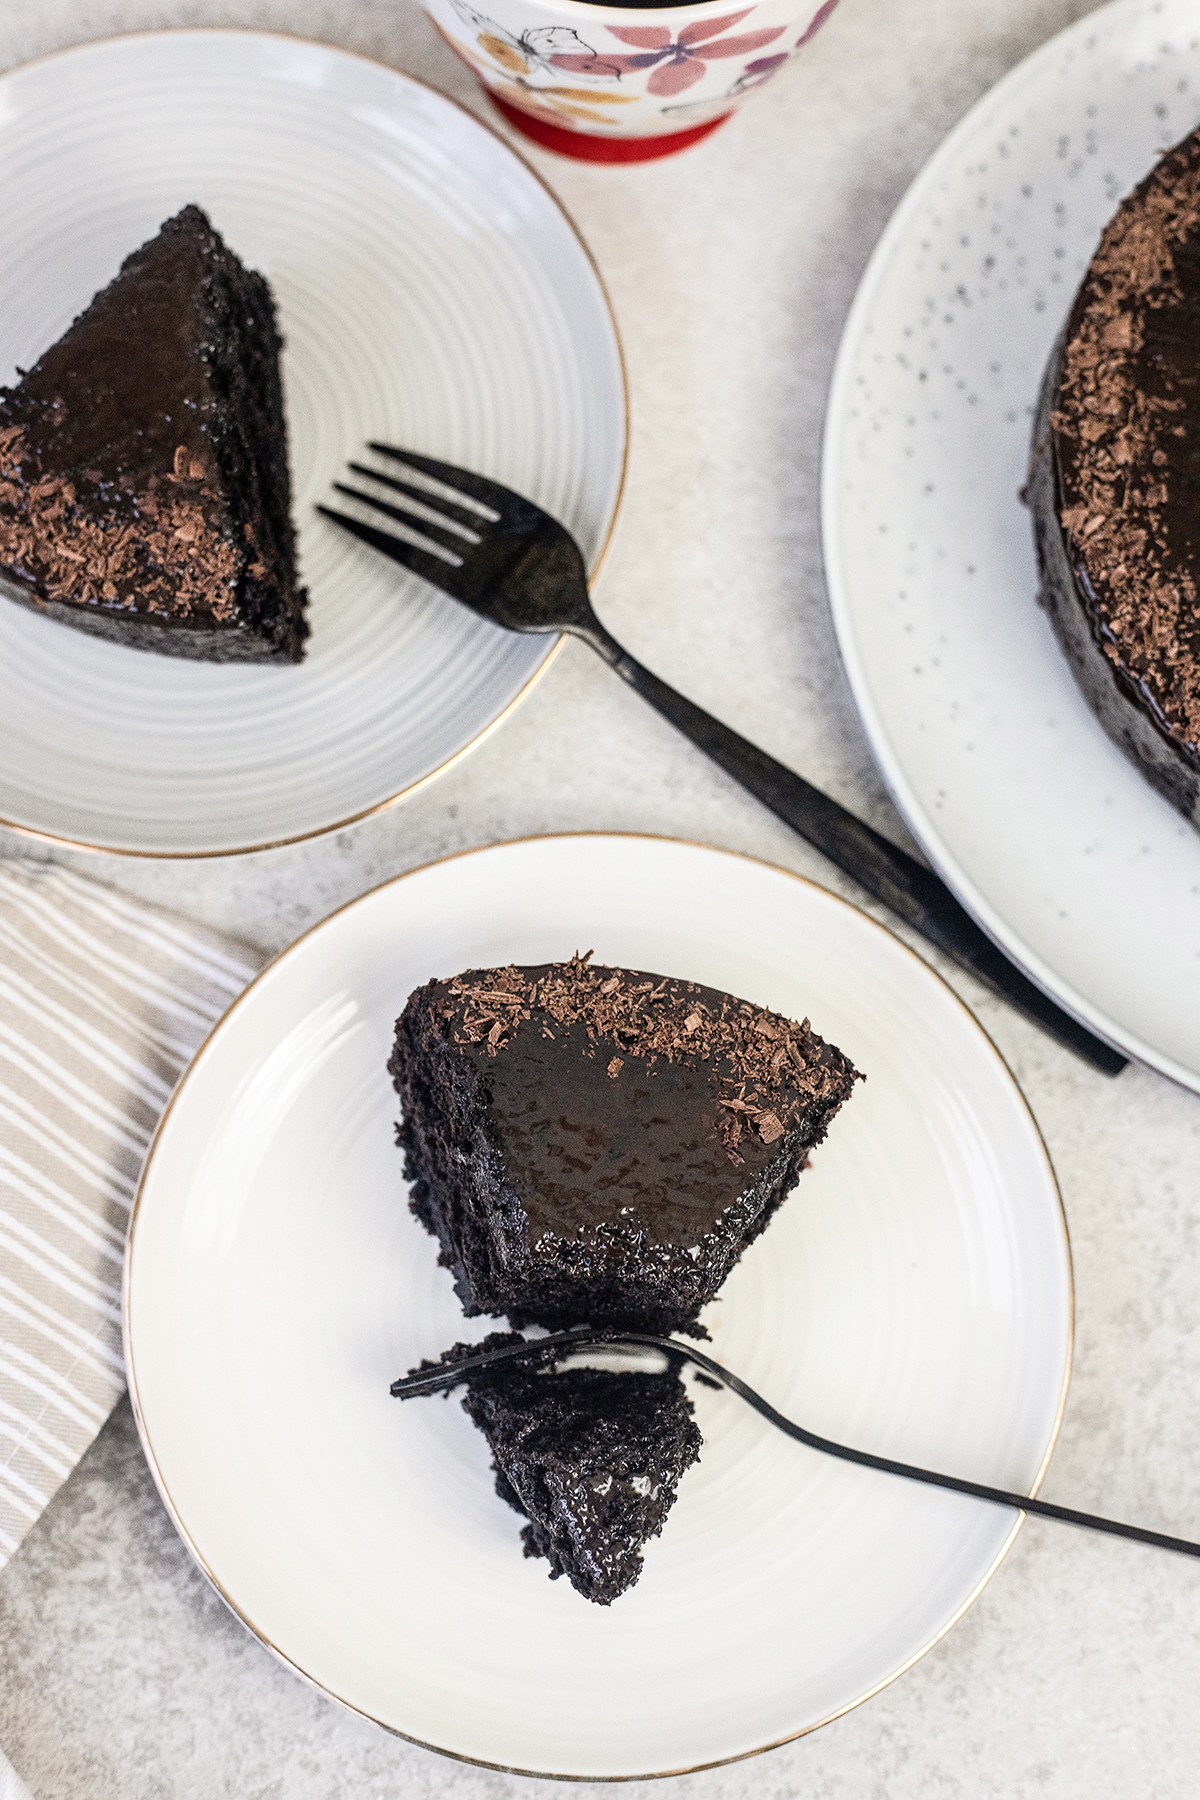 This Oreo chocolate cake is so moist, rich, and smells fantastic.